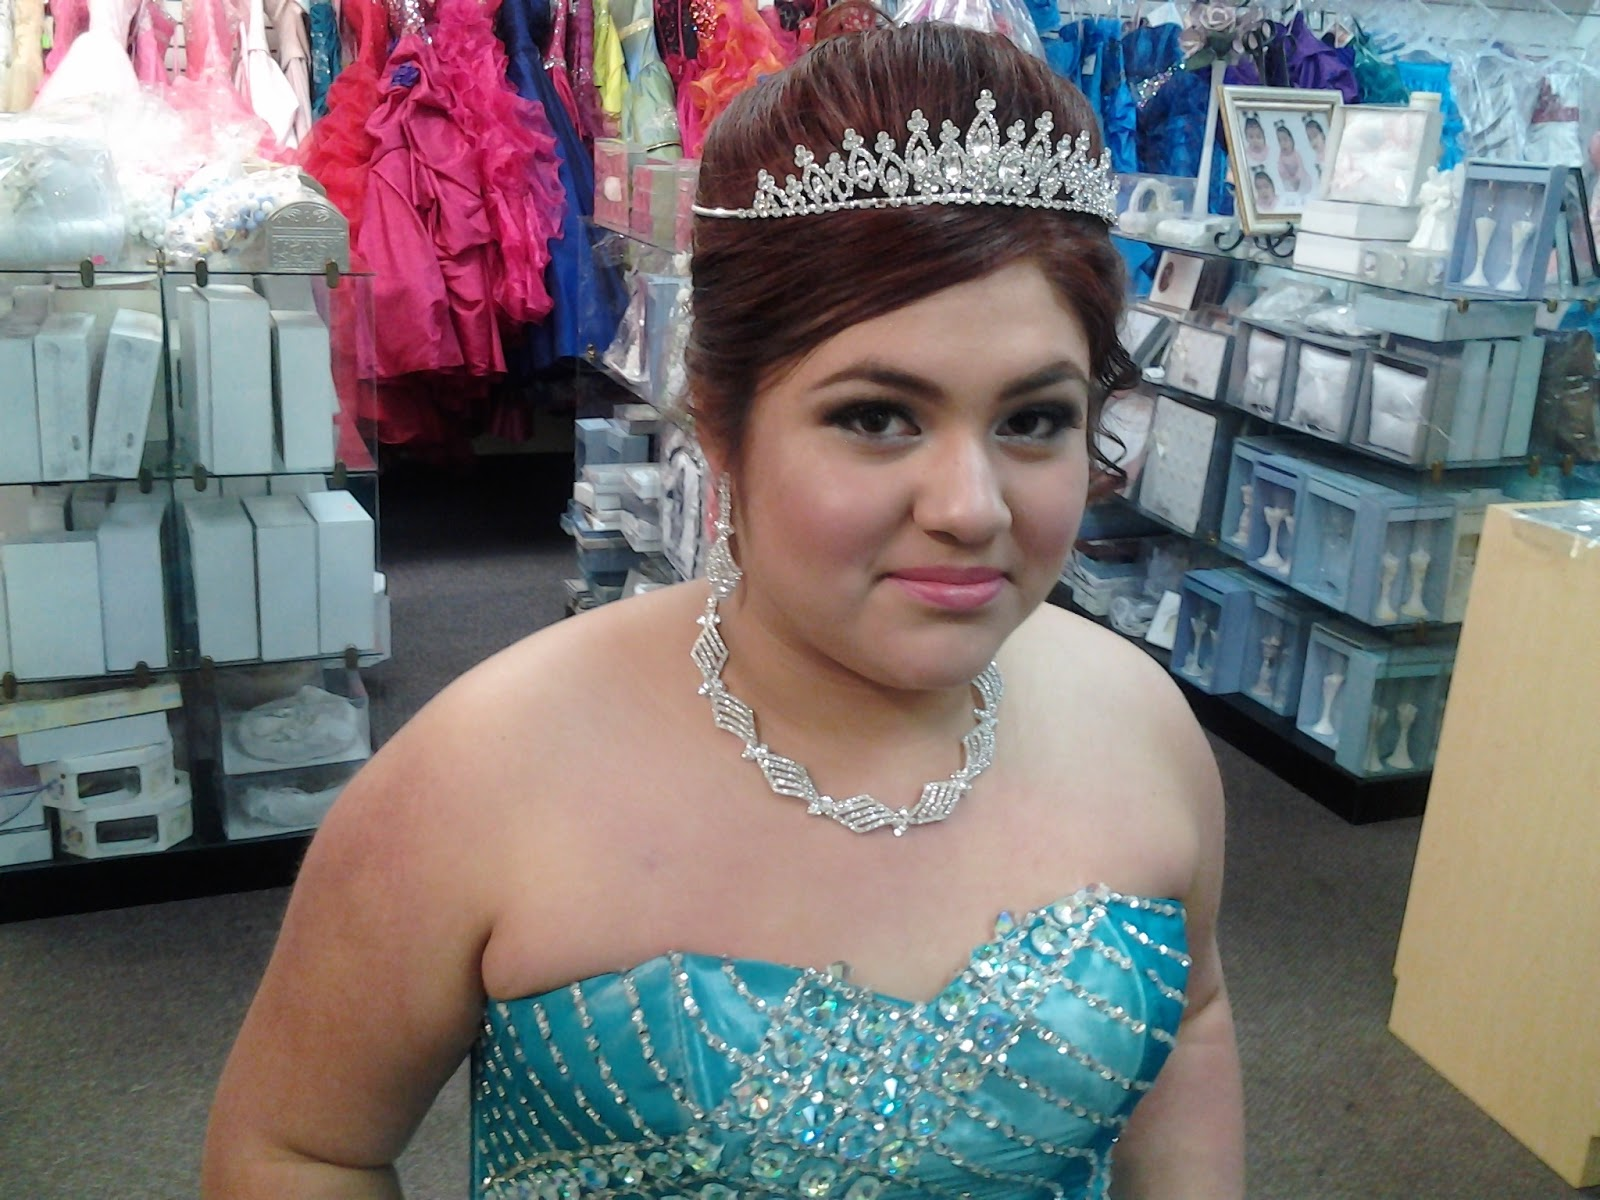 Hairstyles For Quinceaneras Tumblr Quinceanera hairstyles tumblr